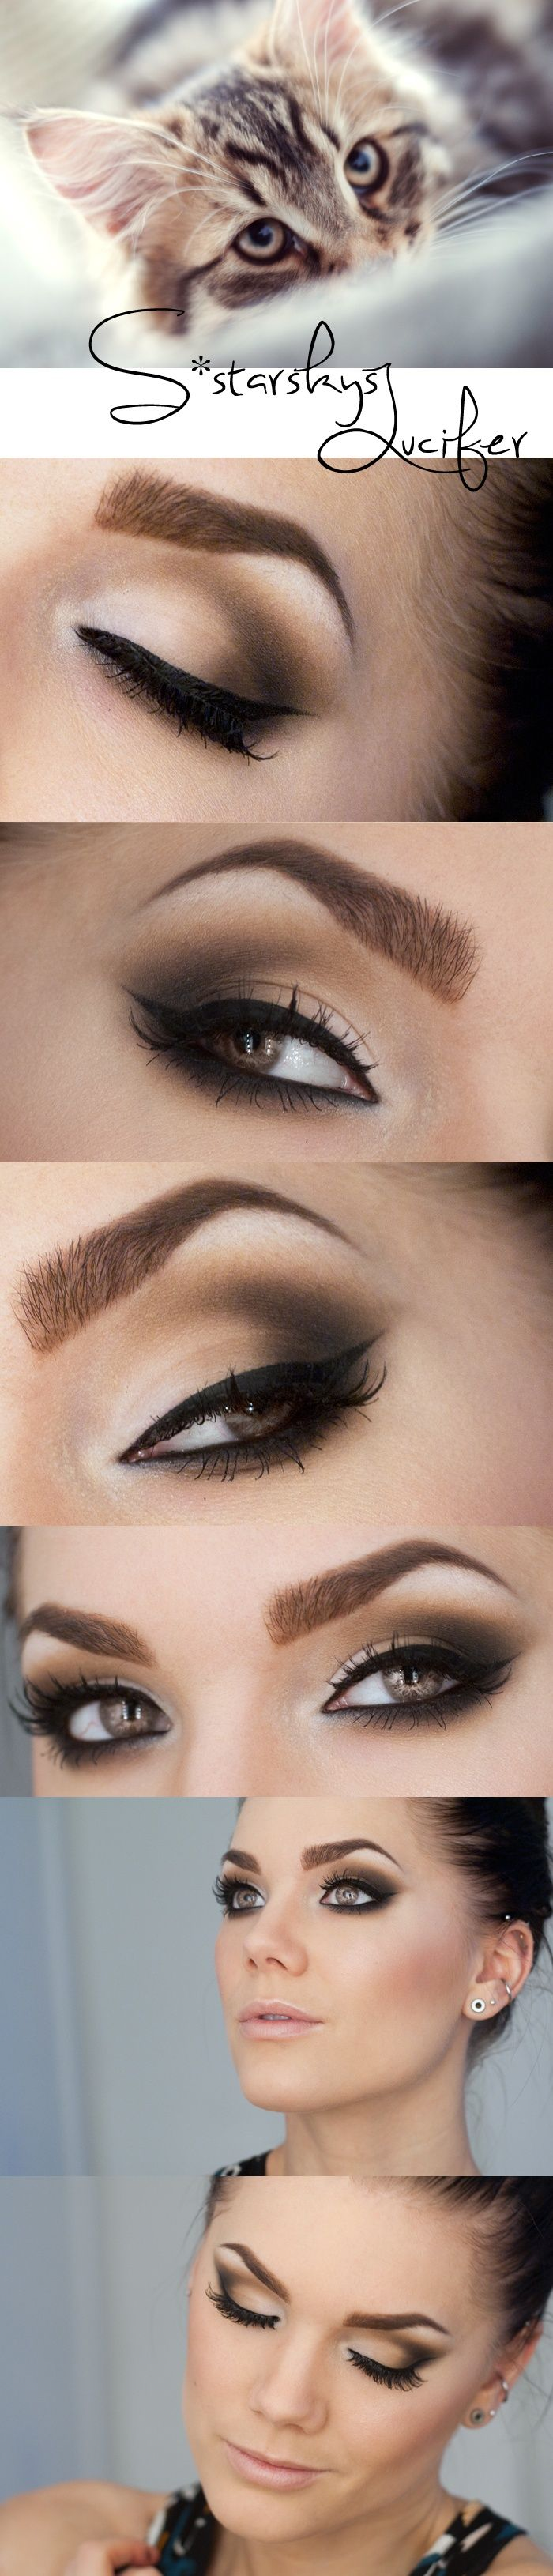 Cat inspired eye makeup, yes please!